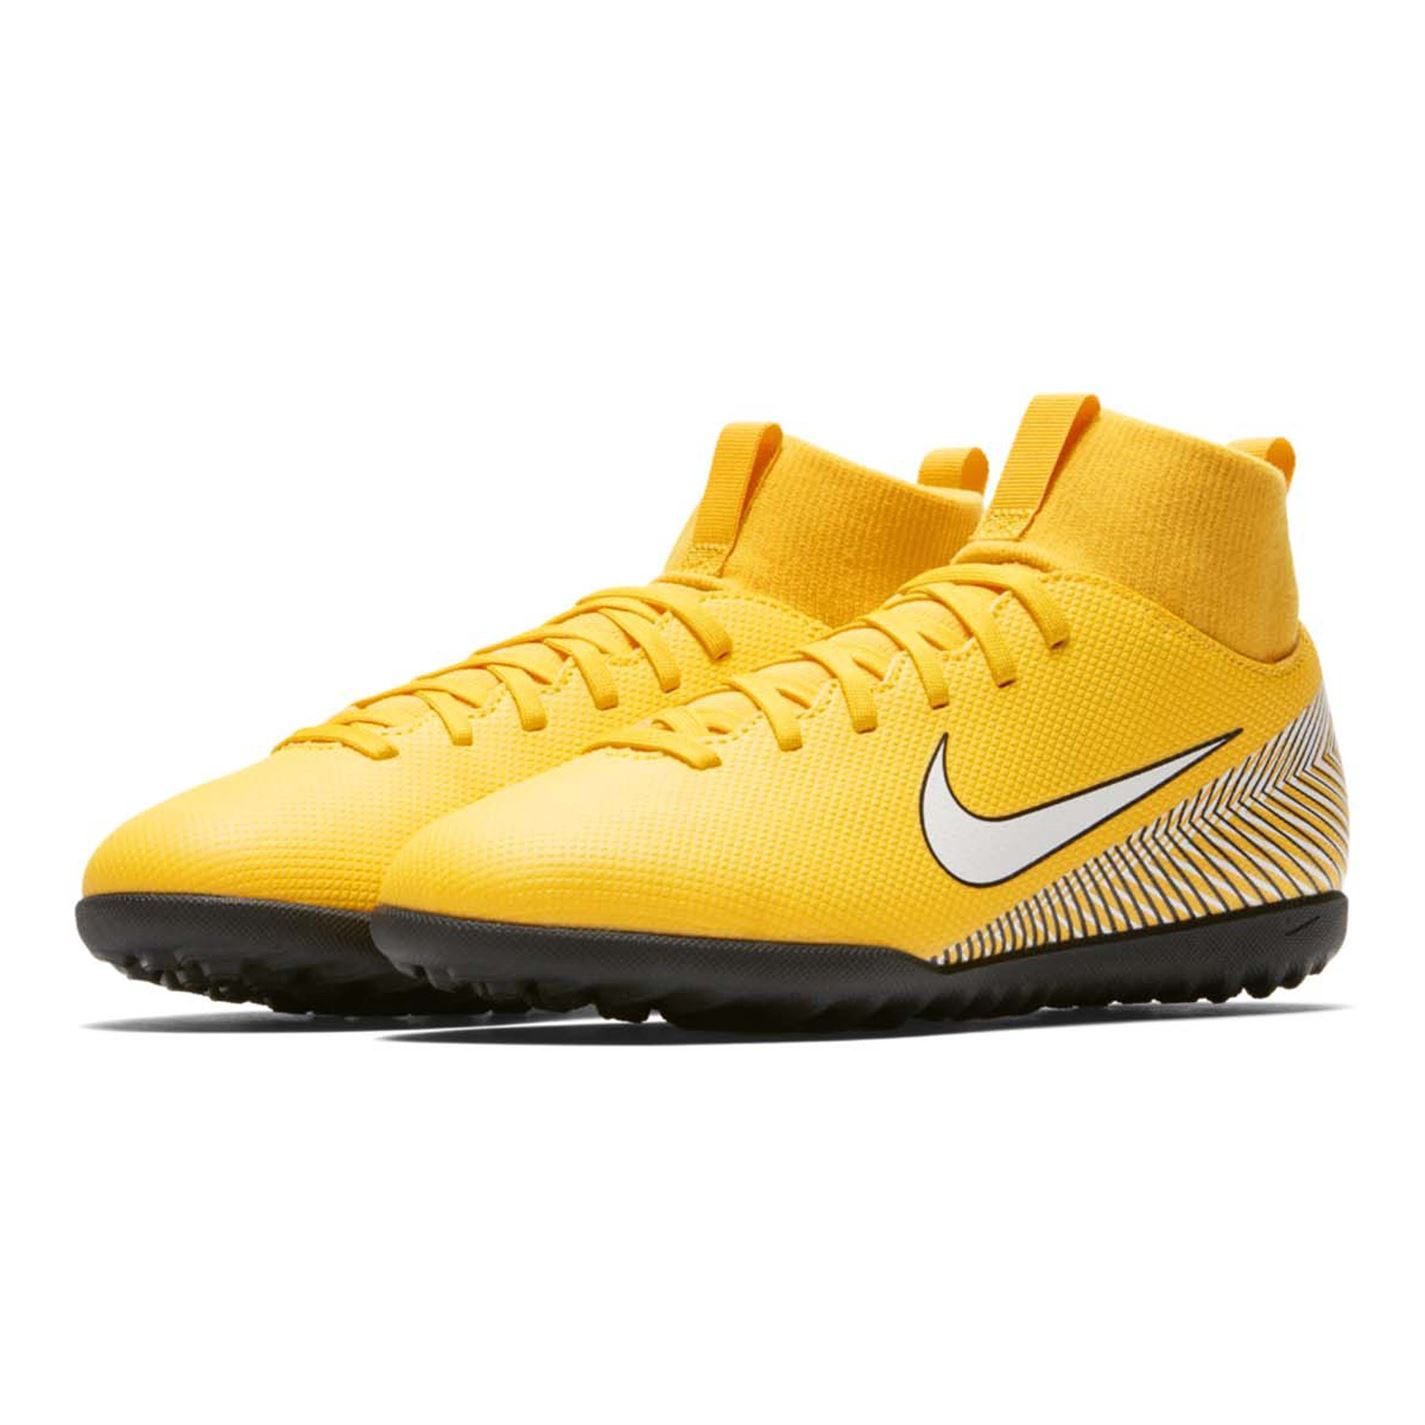 a3f39431d488 Details about Nike Mercurial Superfly Club Neymar Astro Football Trainers  Junior Yellow Soccer